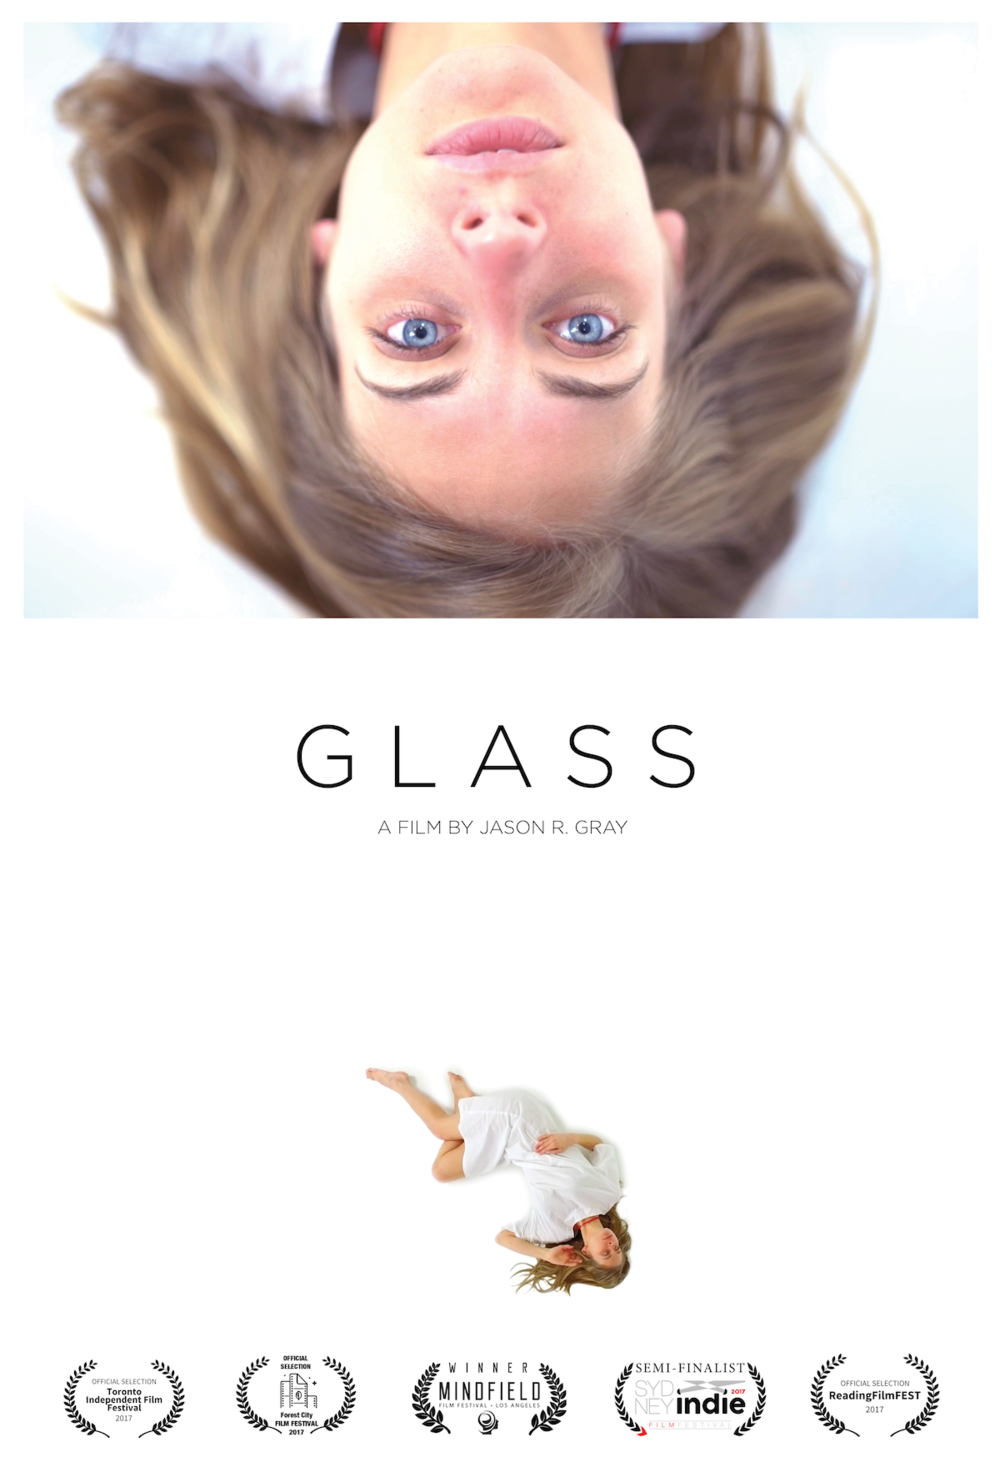 GLASS_White_full_Laurels.png